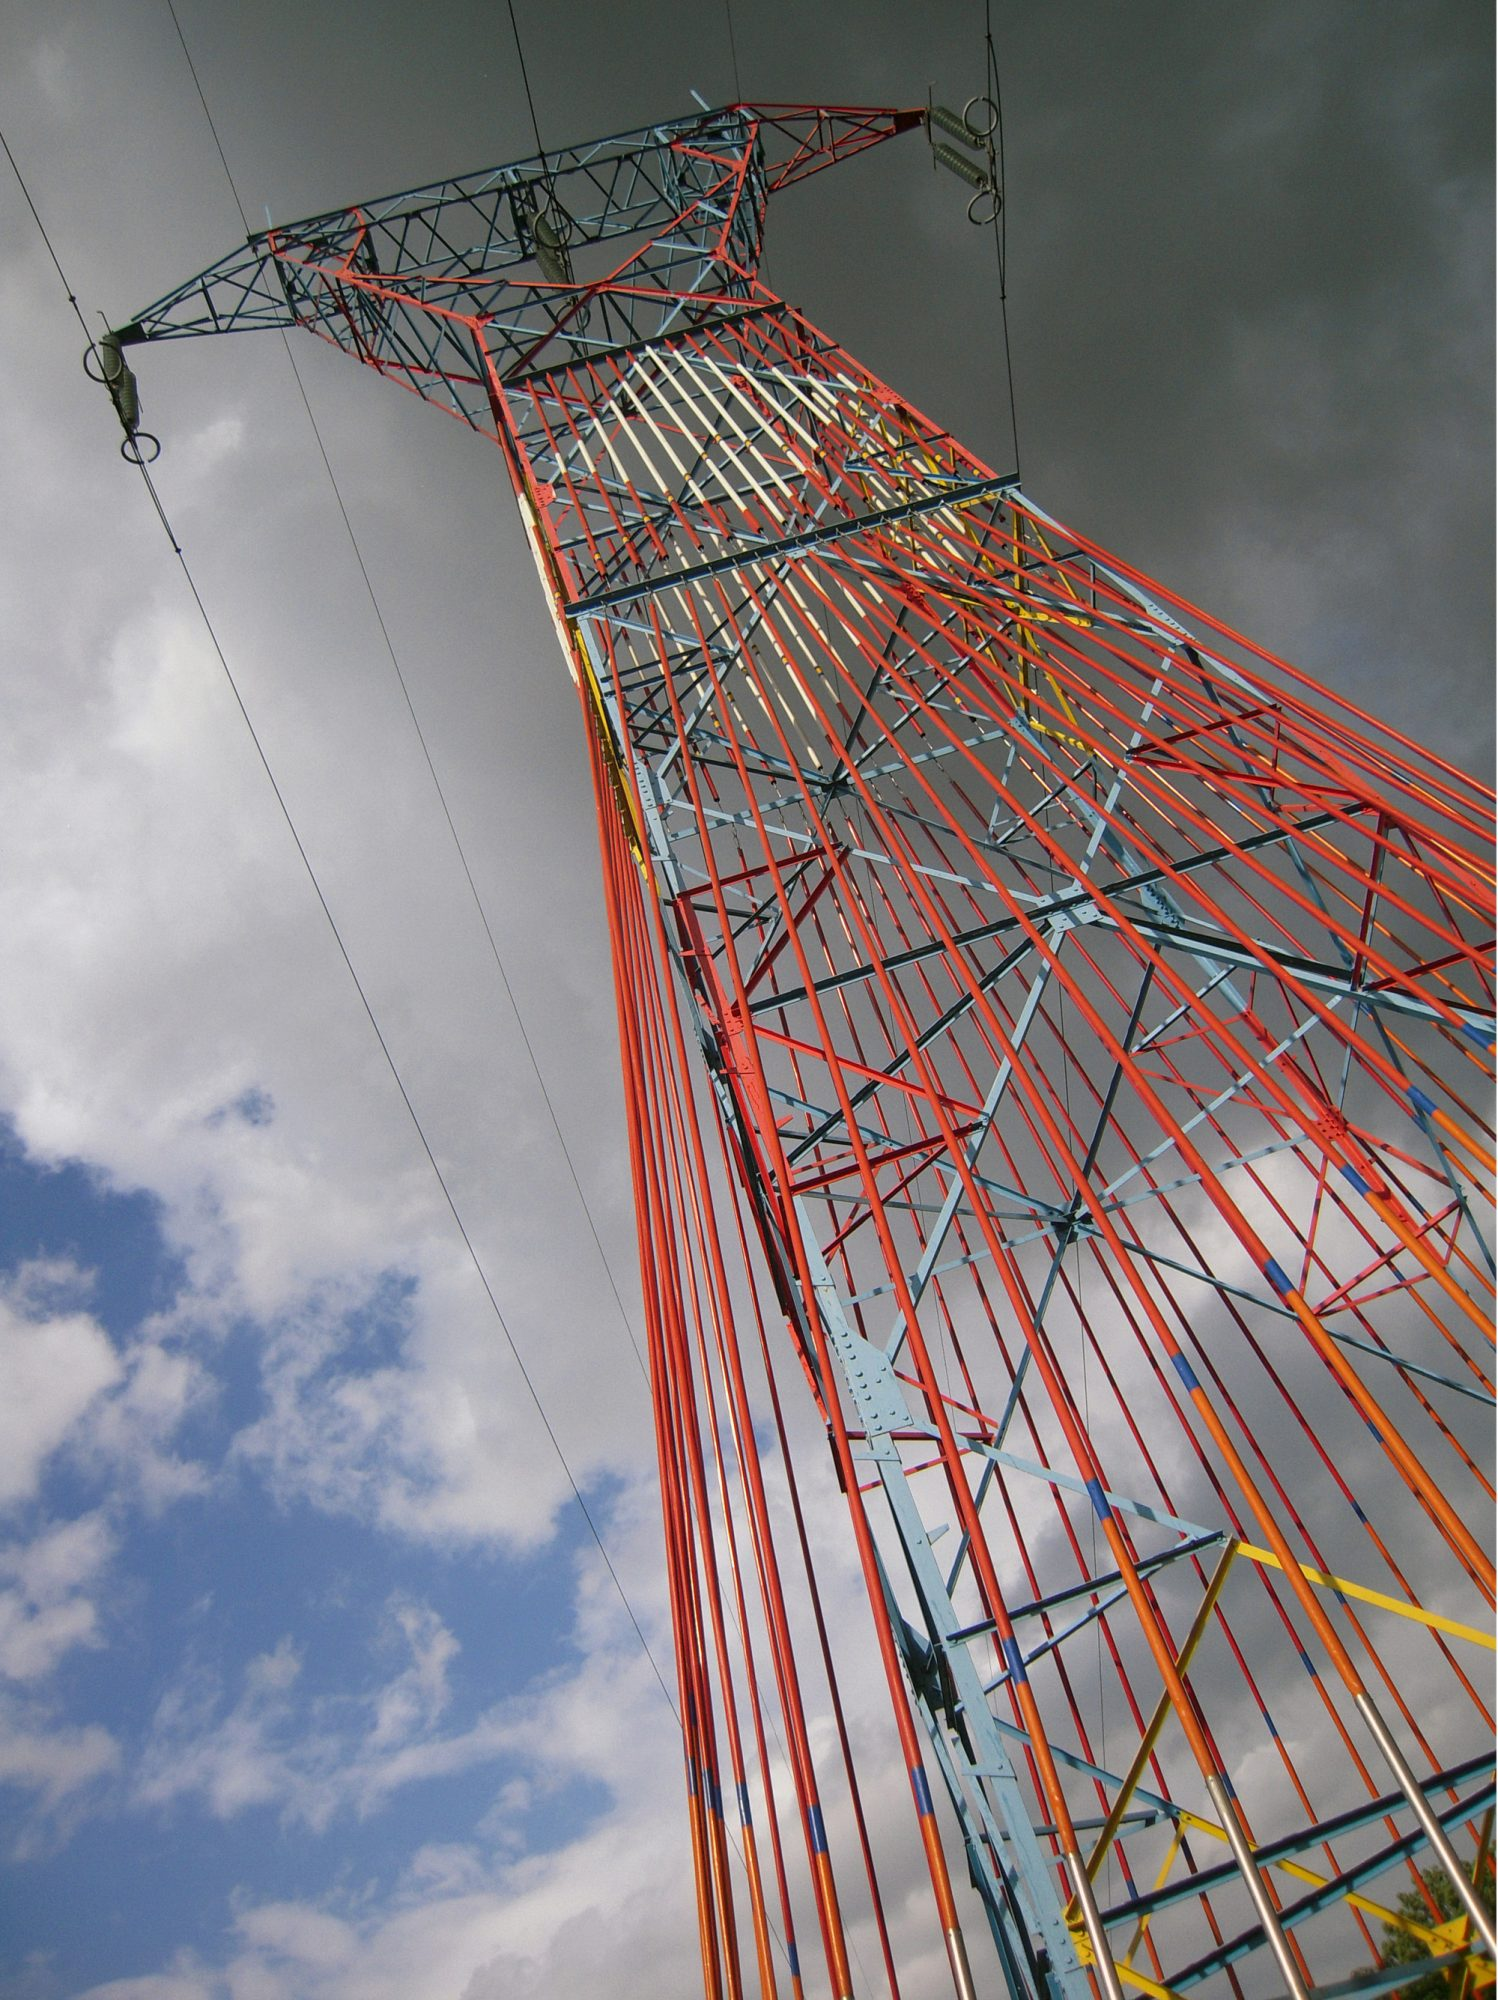 Source-Flame, pylon nb°13